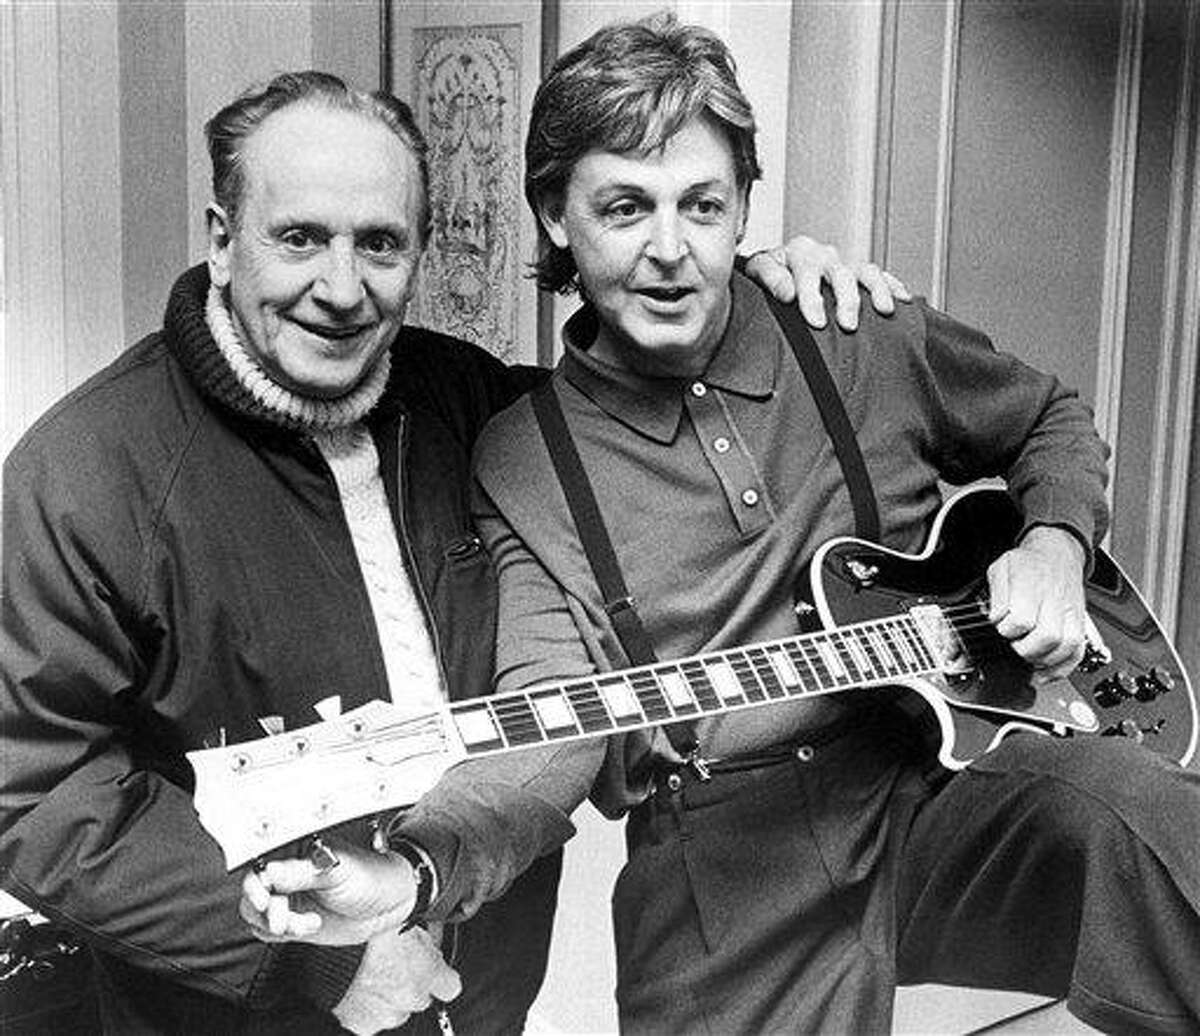 FILE - In this May 3, 1988 file photo, Paul McCartney, right, tries out a custom-made left handed